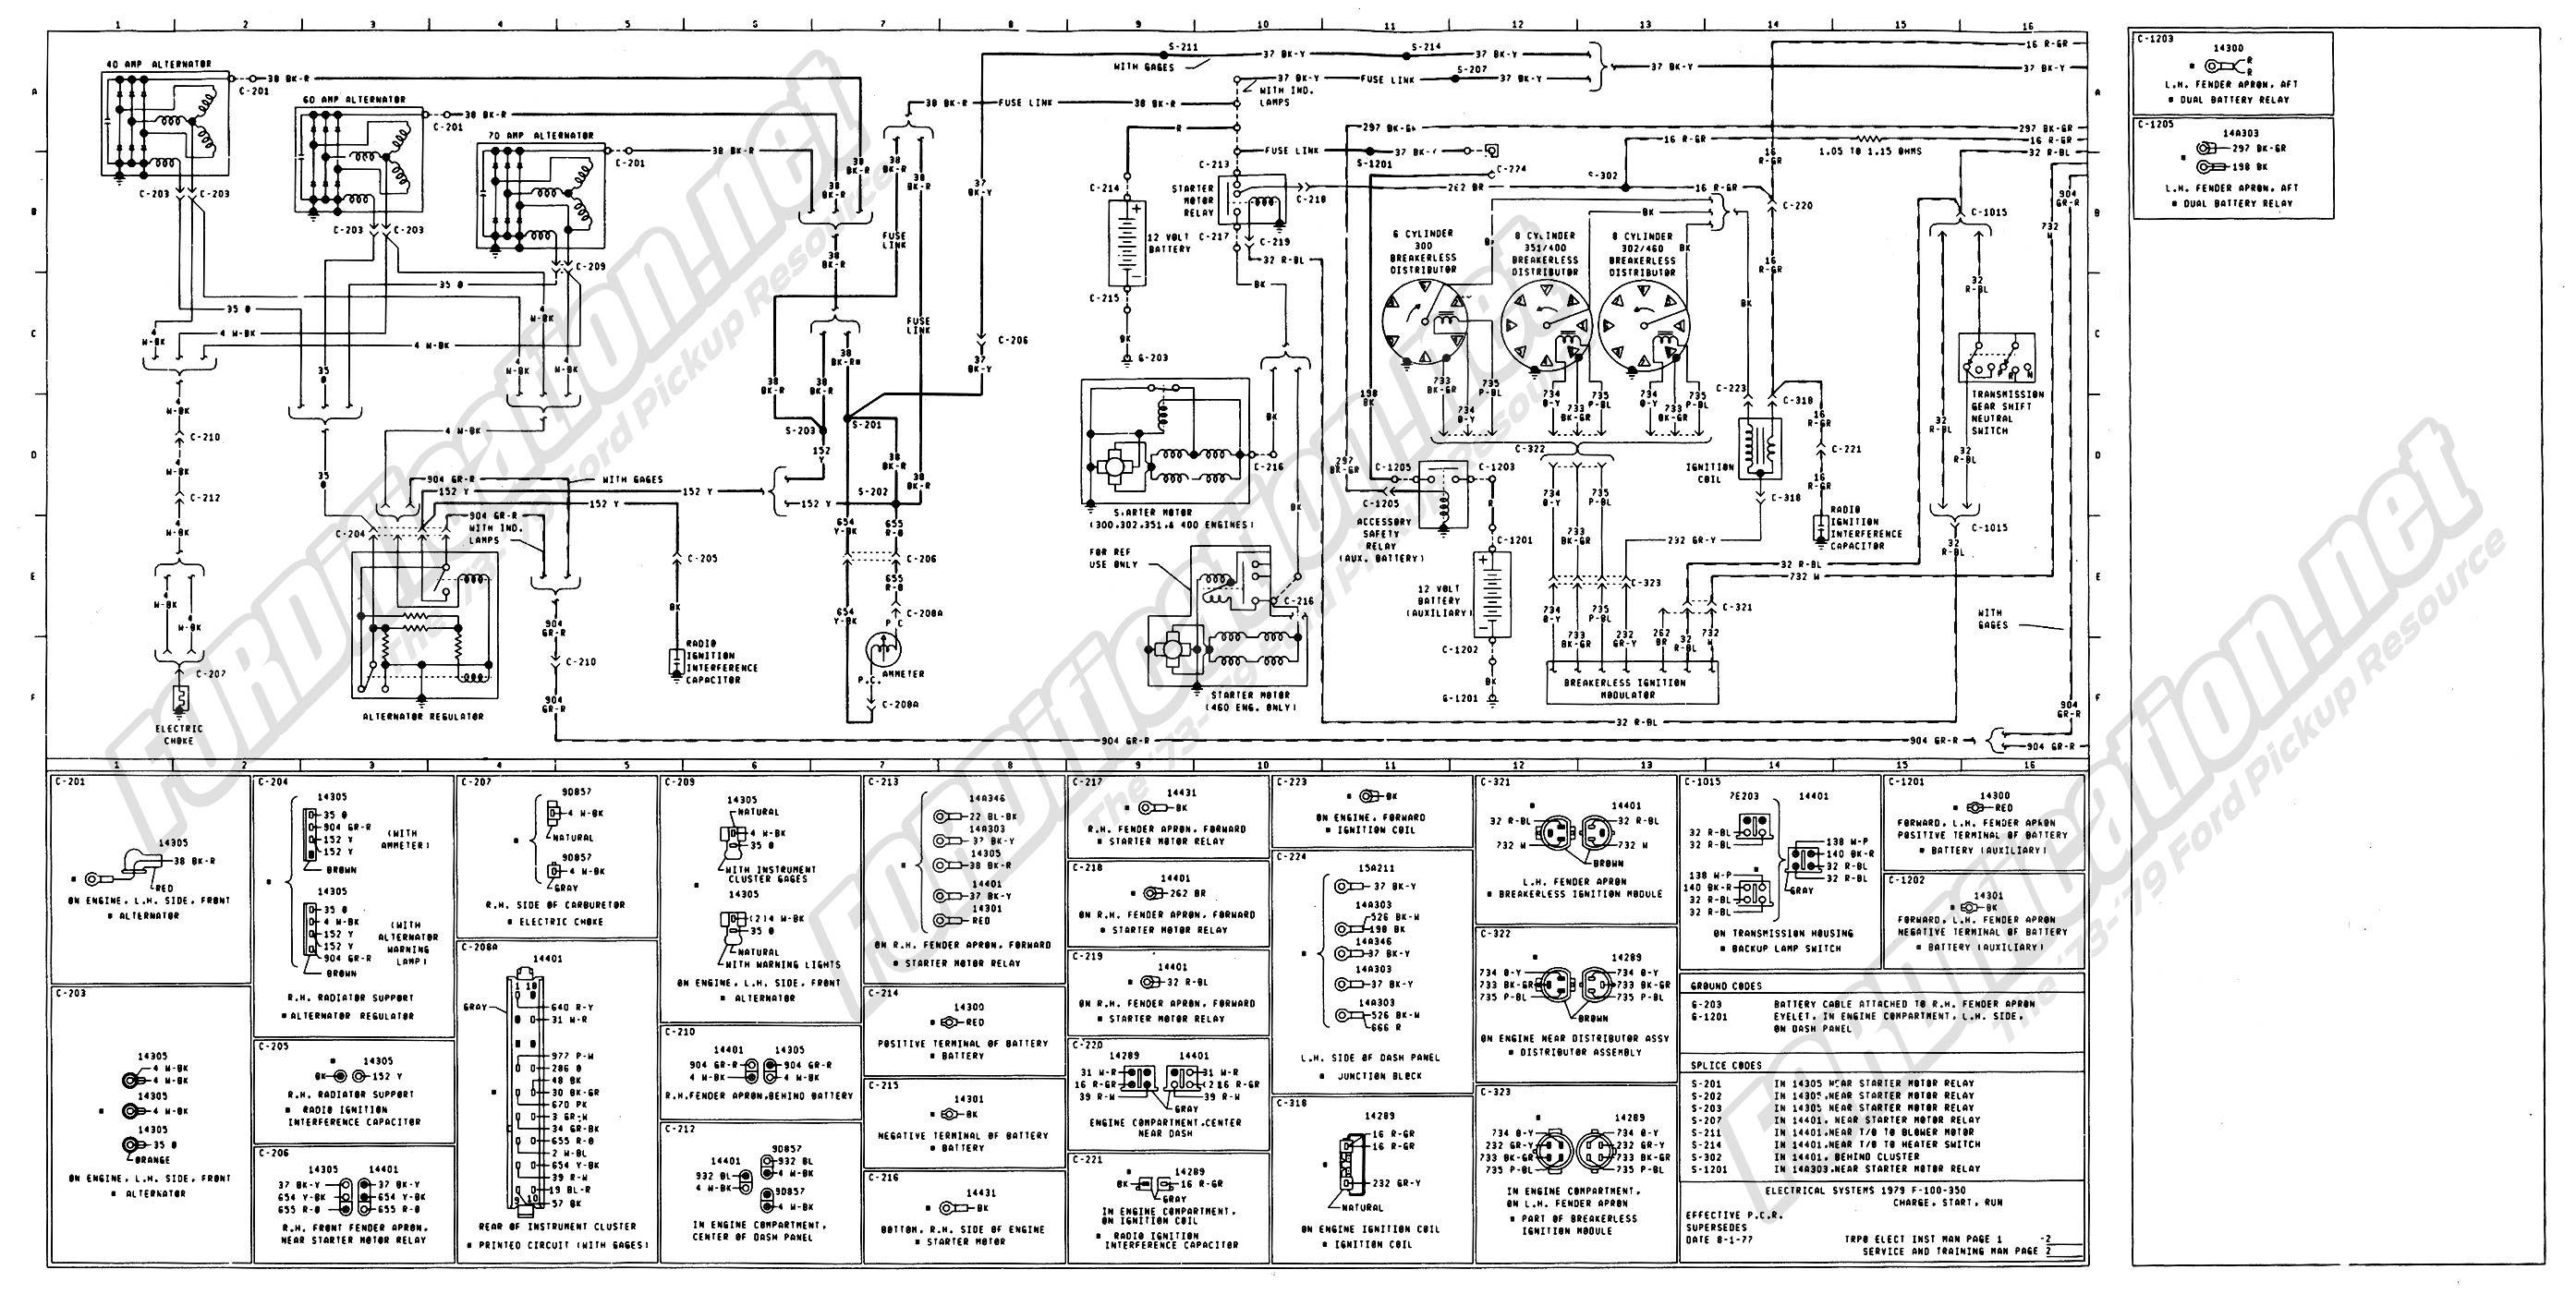 2011 F150 Wiring Diagram Manual Of Mustang Headlight Schematic 2019 U2022 Rh Digitrading Co